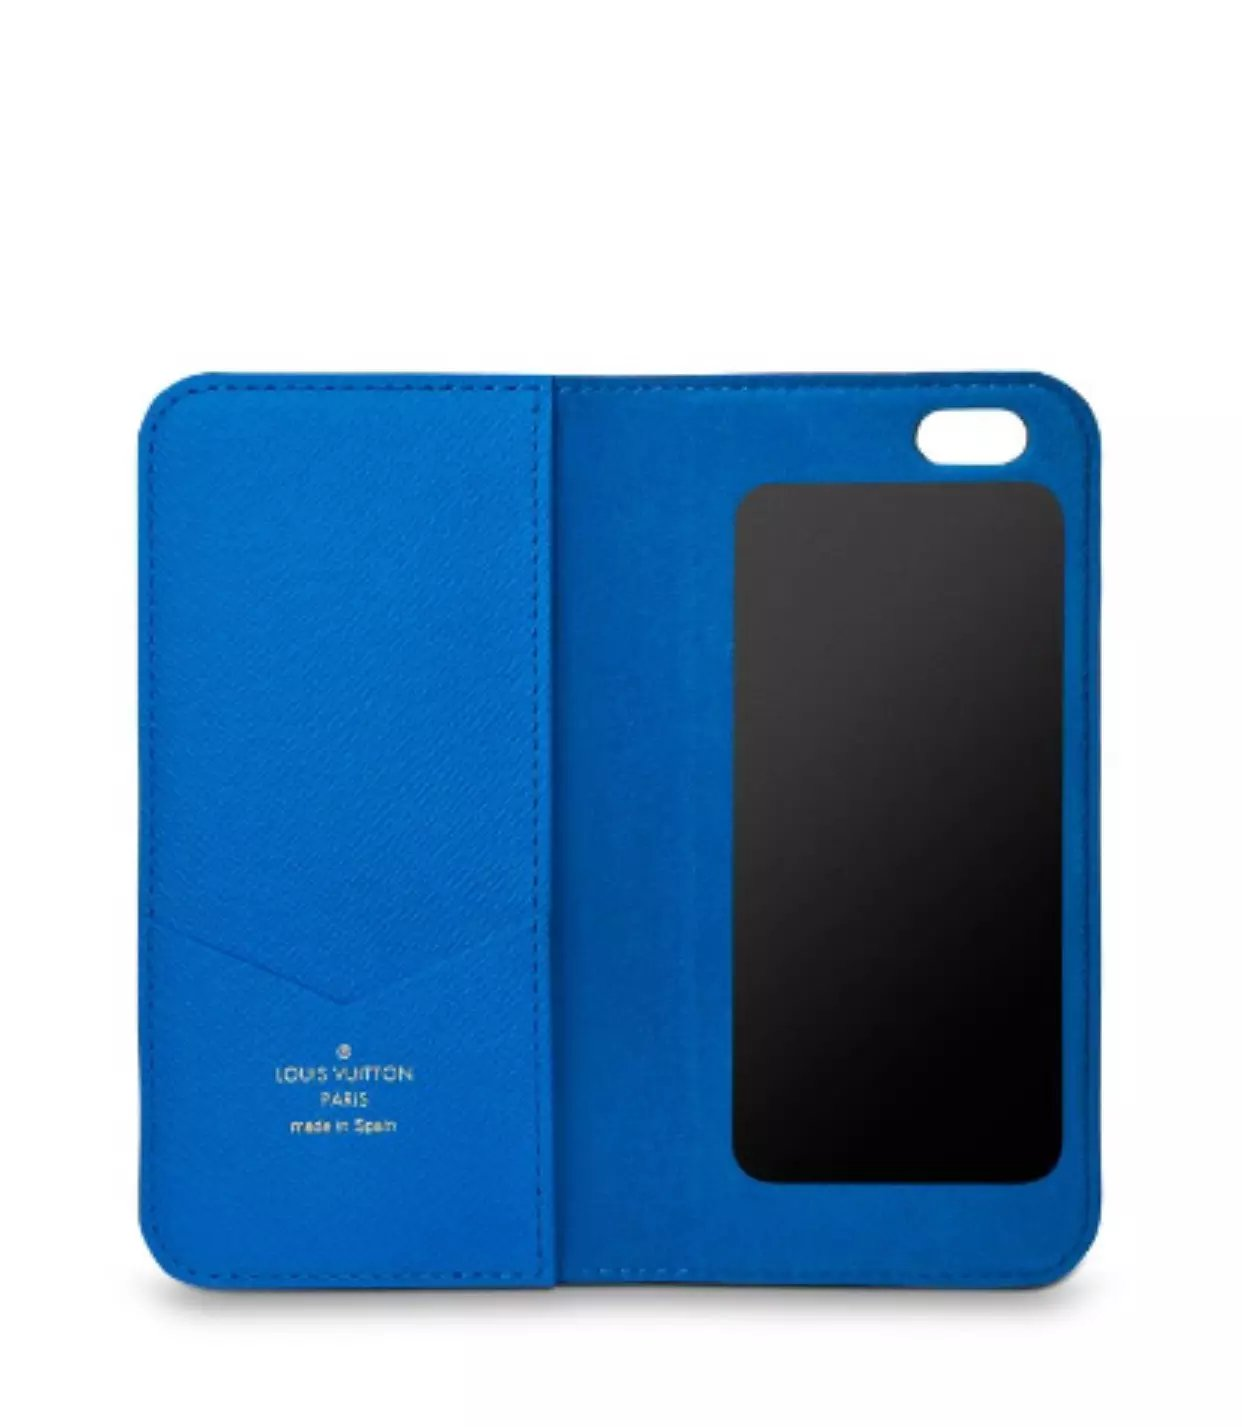 case für iphone iphone hülle eigenes foto Louis Vuitton iphone6 plus hülle iphone 6 Plus flip ca6 leder iphone 6 Plus hülle lila handyhülle iphone 6 Pluslbst gestalten iphone 3 schutzhülle iphone 6 Plus flip ca6 bunt iphone 6 Plus hülle alu